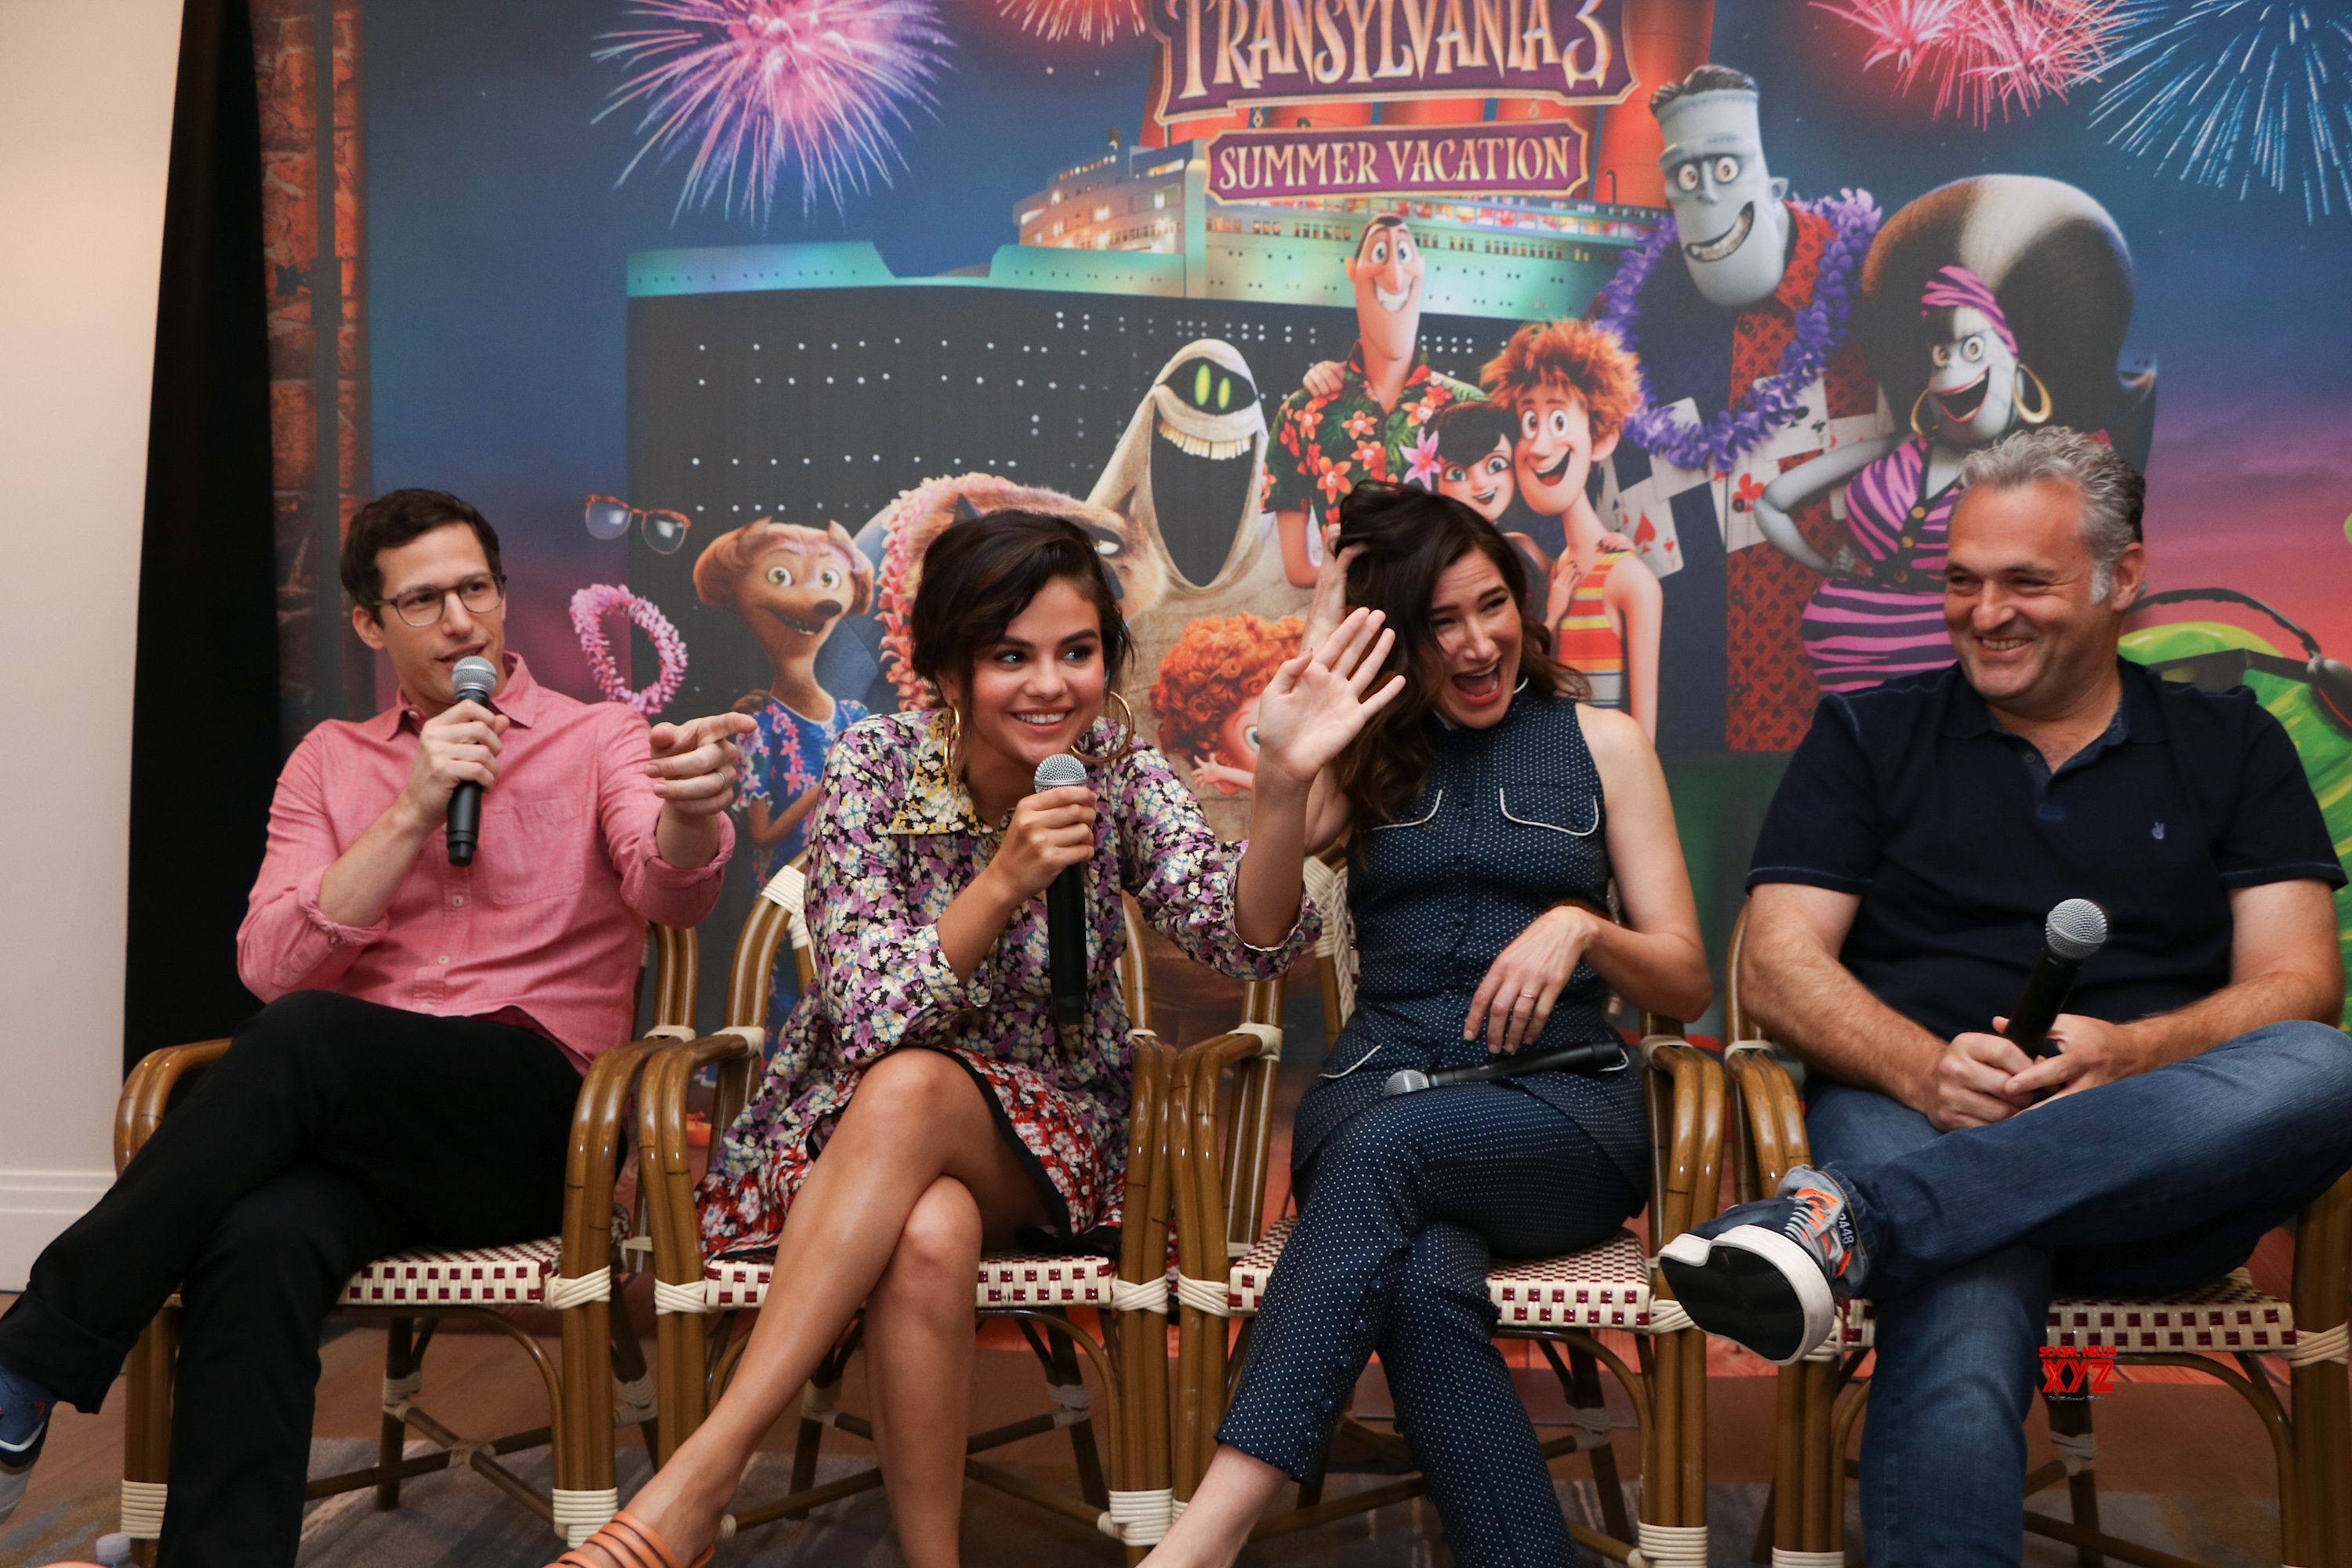 Hotel Transylvania 3 Summer Vacation Movie Los Angeles Press Conference Gallery